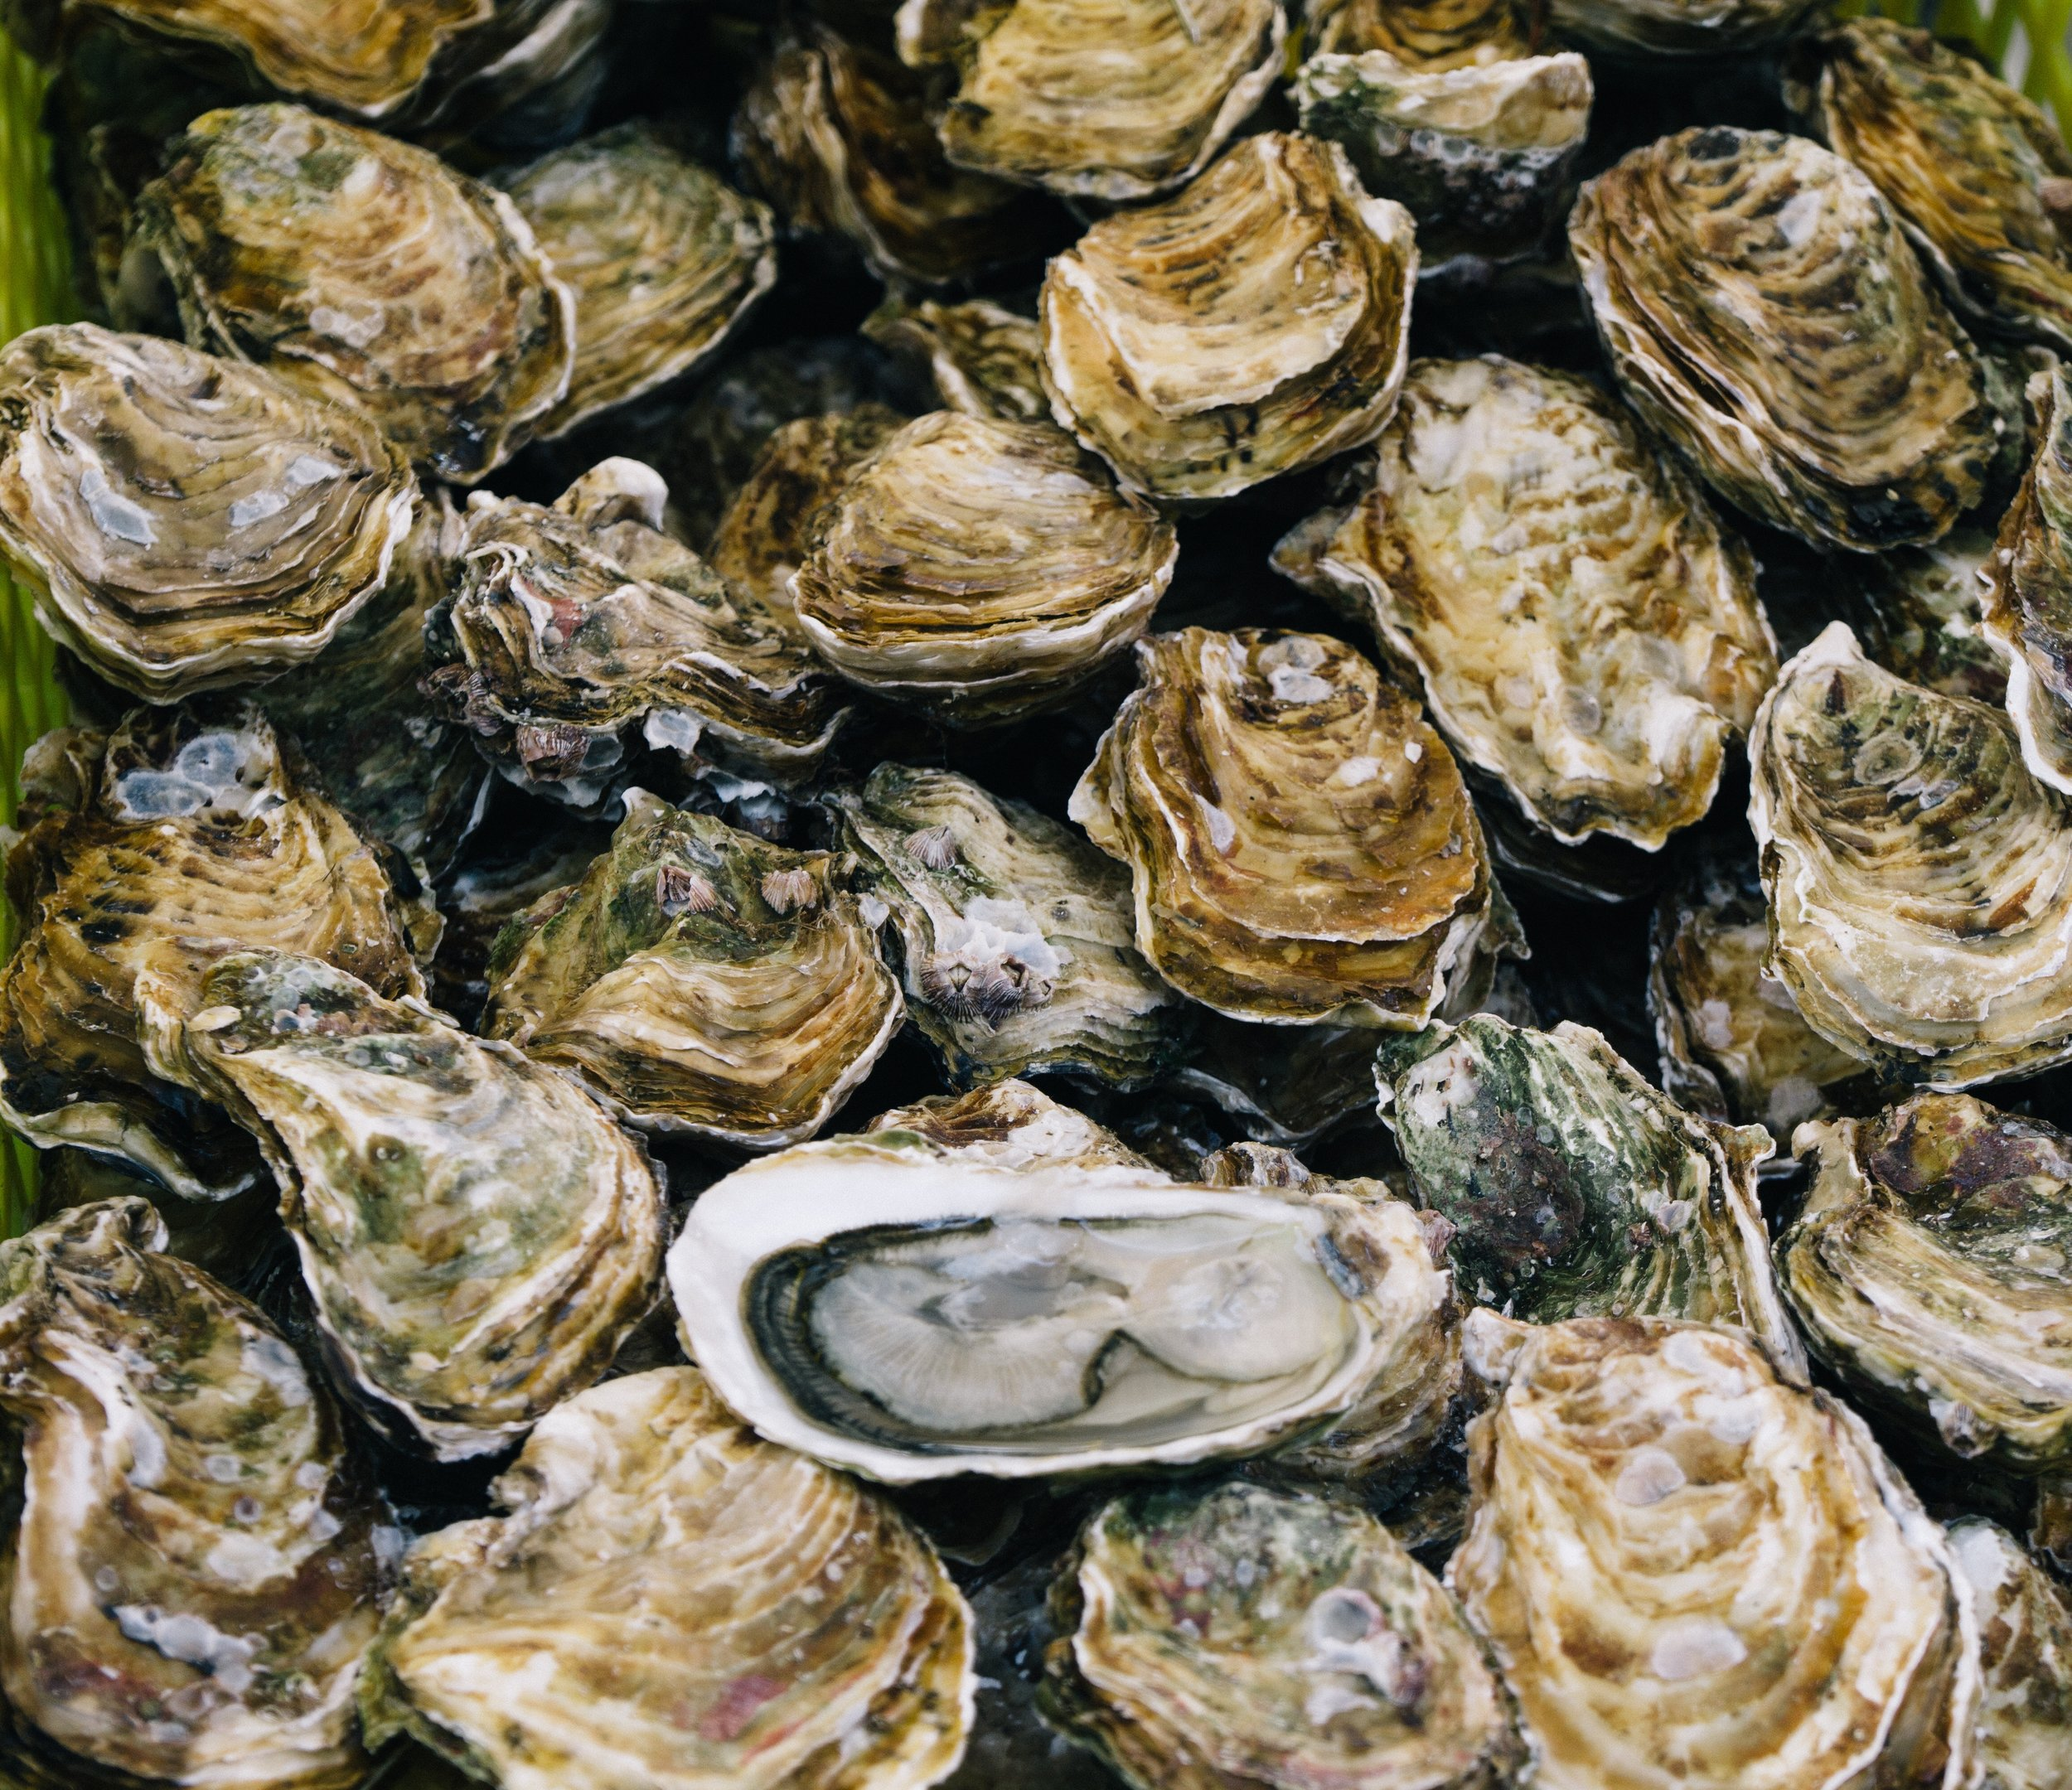 OYSTER RAW BAR - Daily FreshEast/West Coast Oysters  $1.25 Each3 to 6 pm  Mon-Sat.